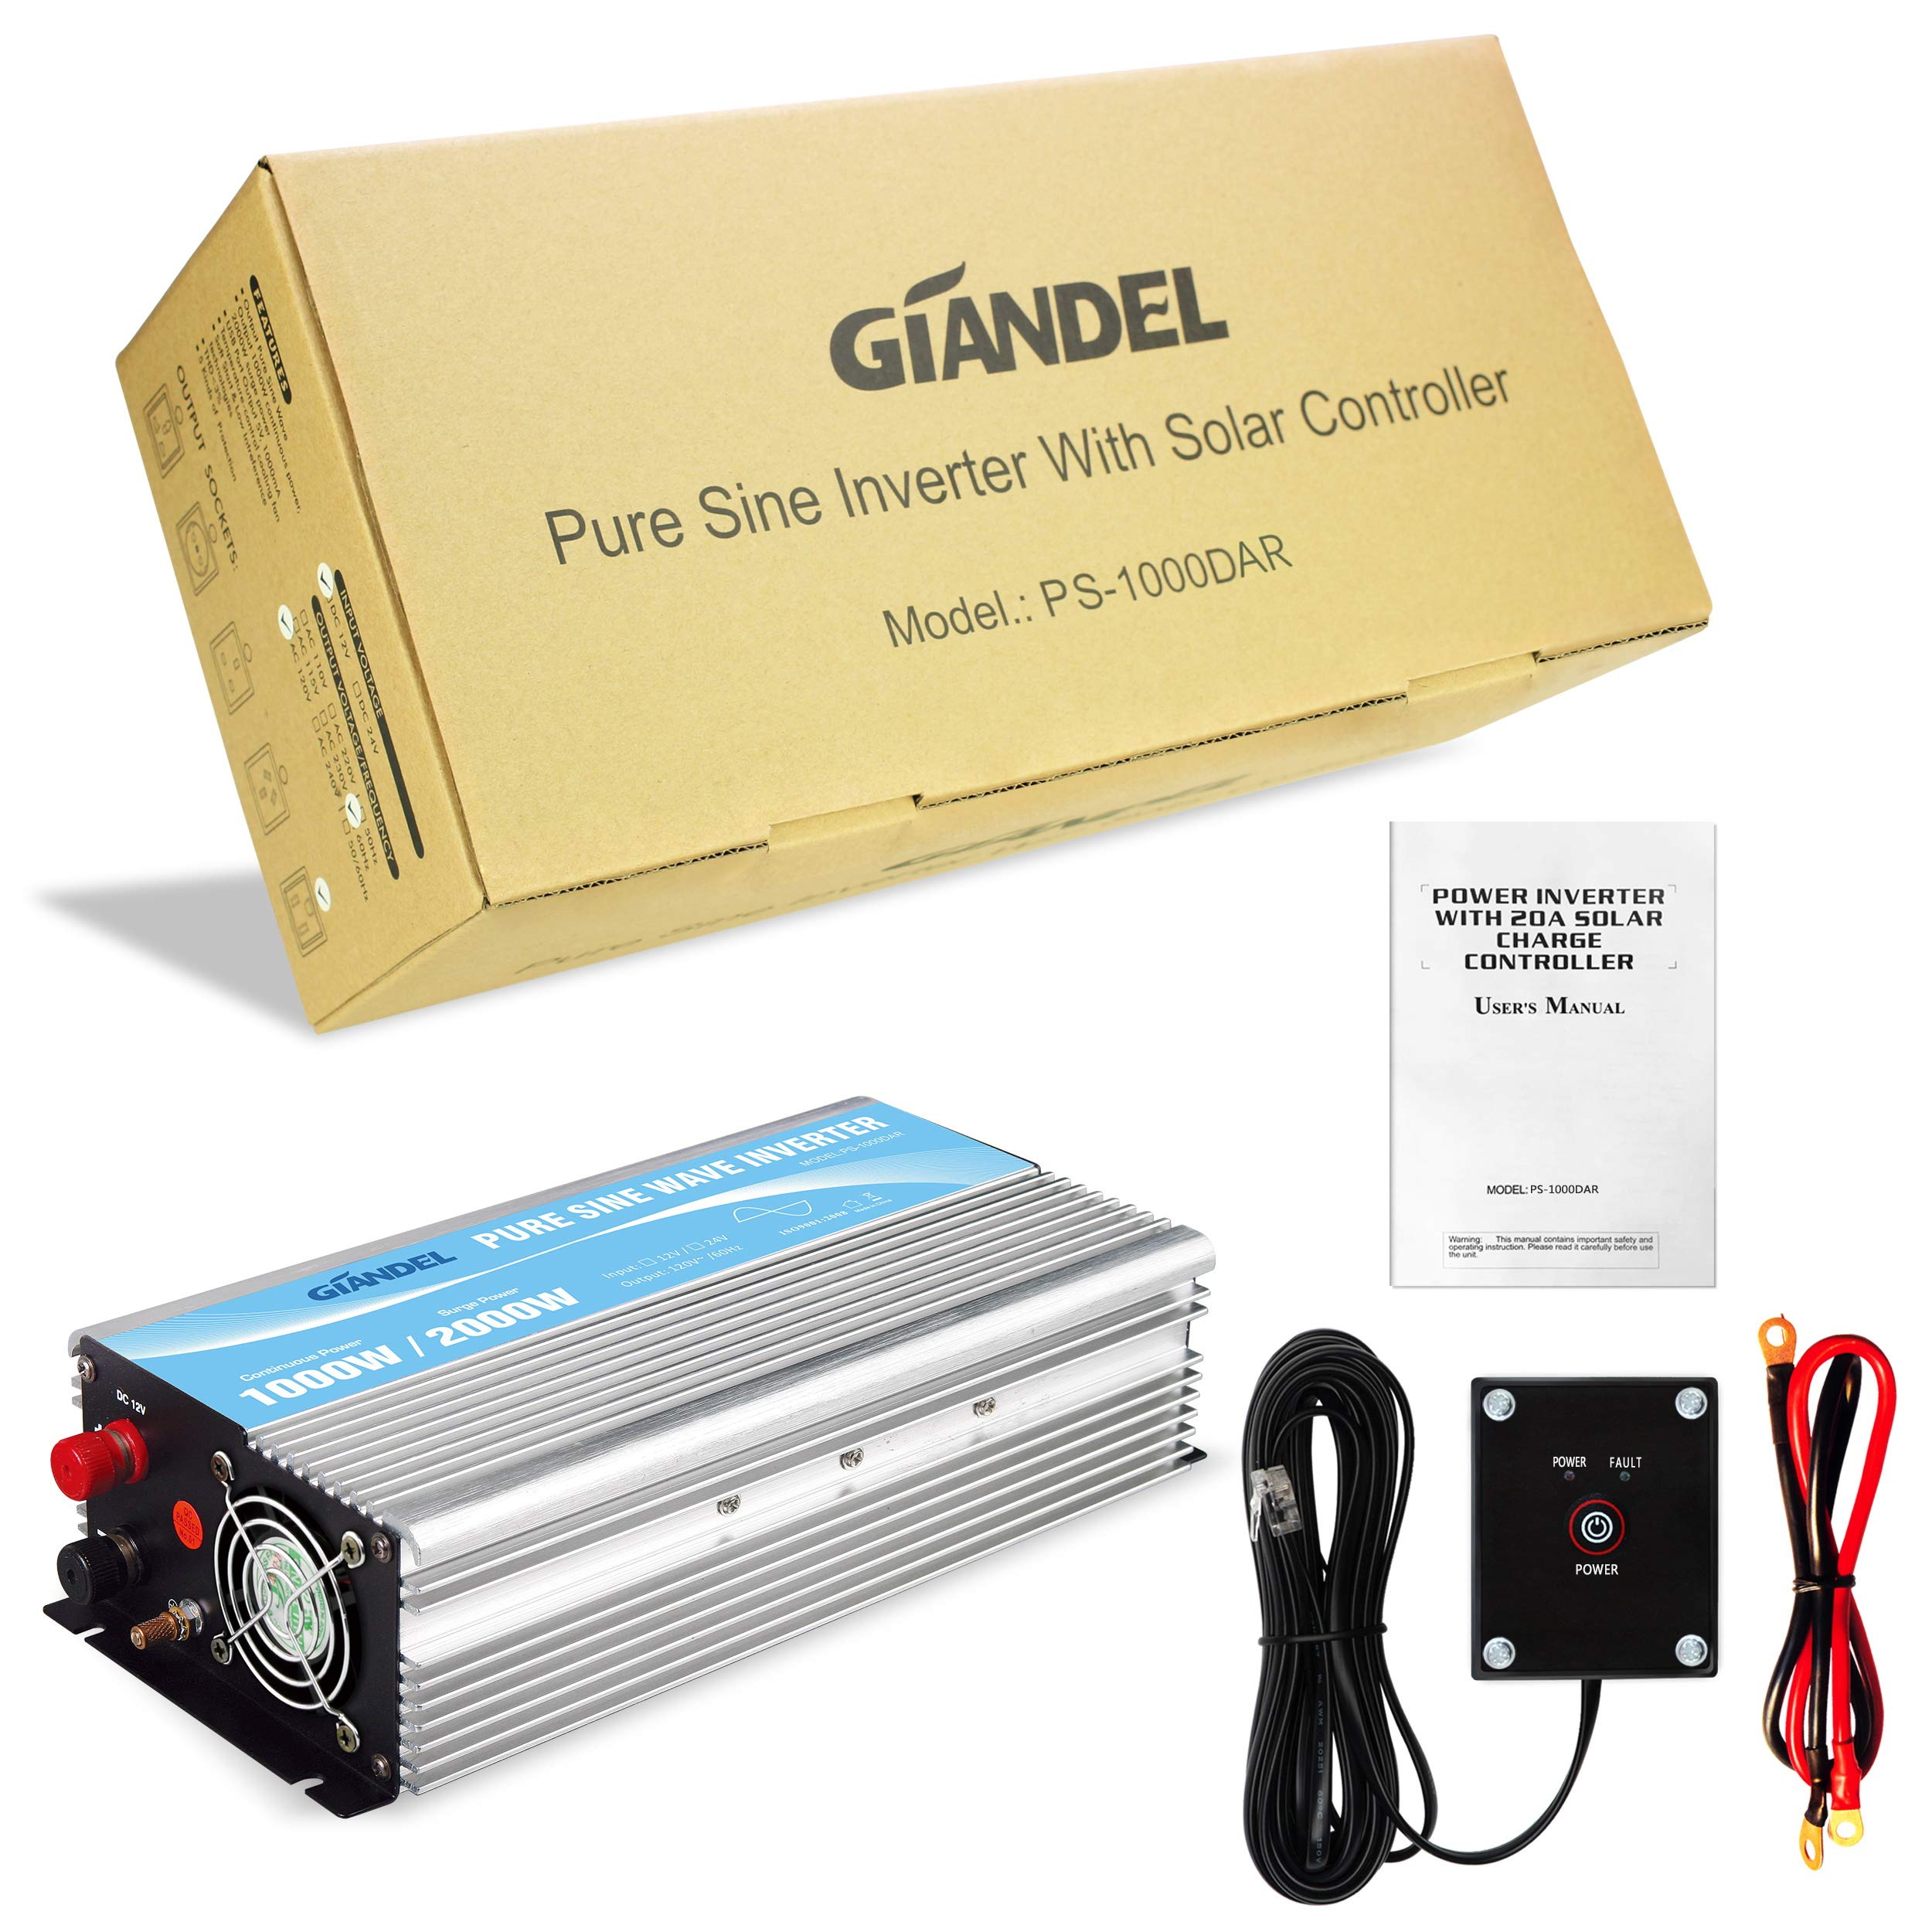 Giandel Pure Sine Wave Power Inverter 1000W DC 24V to AC 110V 120V with Remote Control with Dual AC Outlets &1A USB Port for RV Truck Car Solar System and Emergency by Giandel (Image #6)